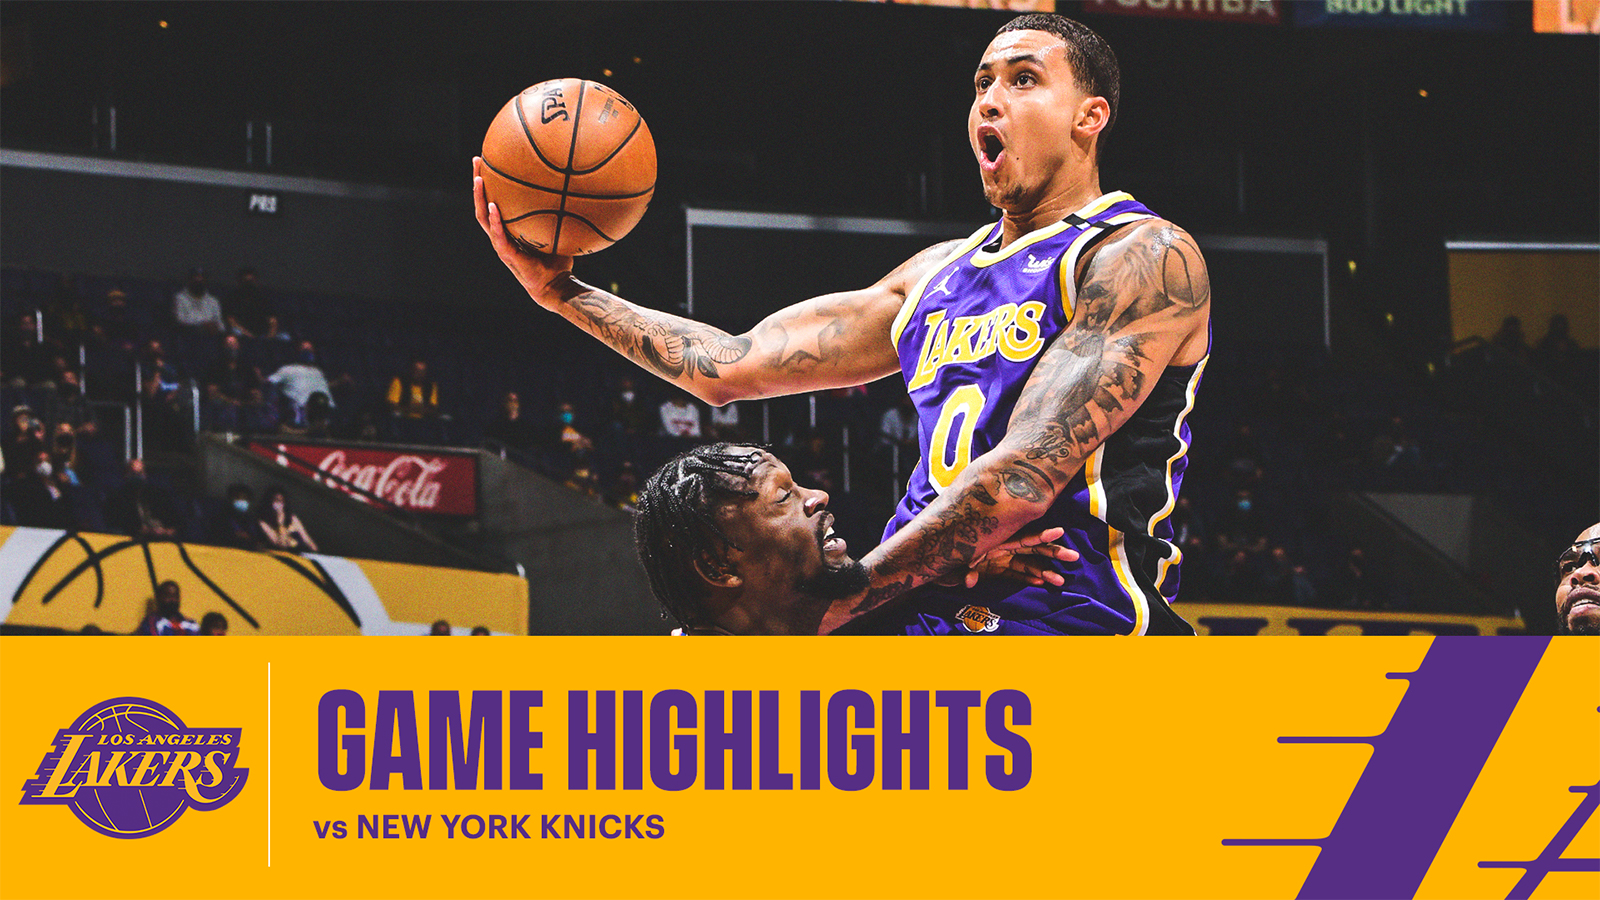 HIGHLIGHTS | Kyle Kuzma (23 pts, 3 reb) vs New York Knicks